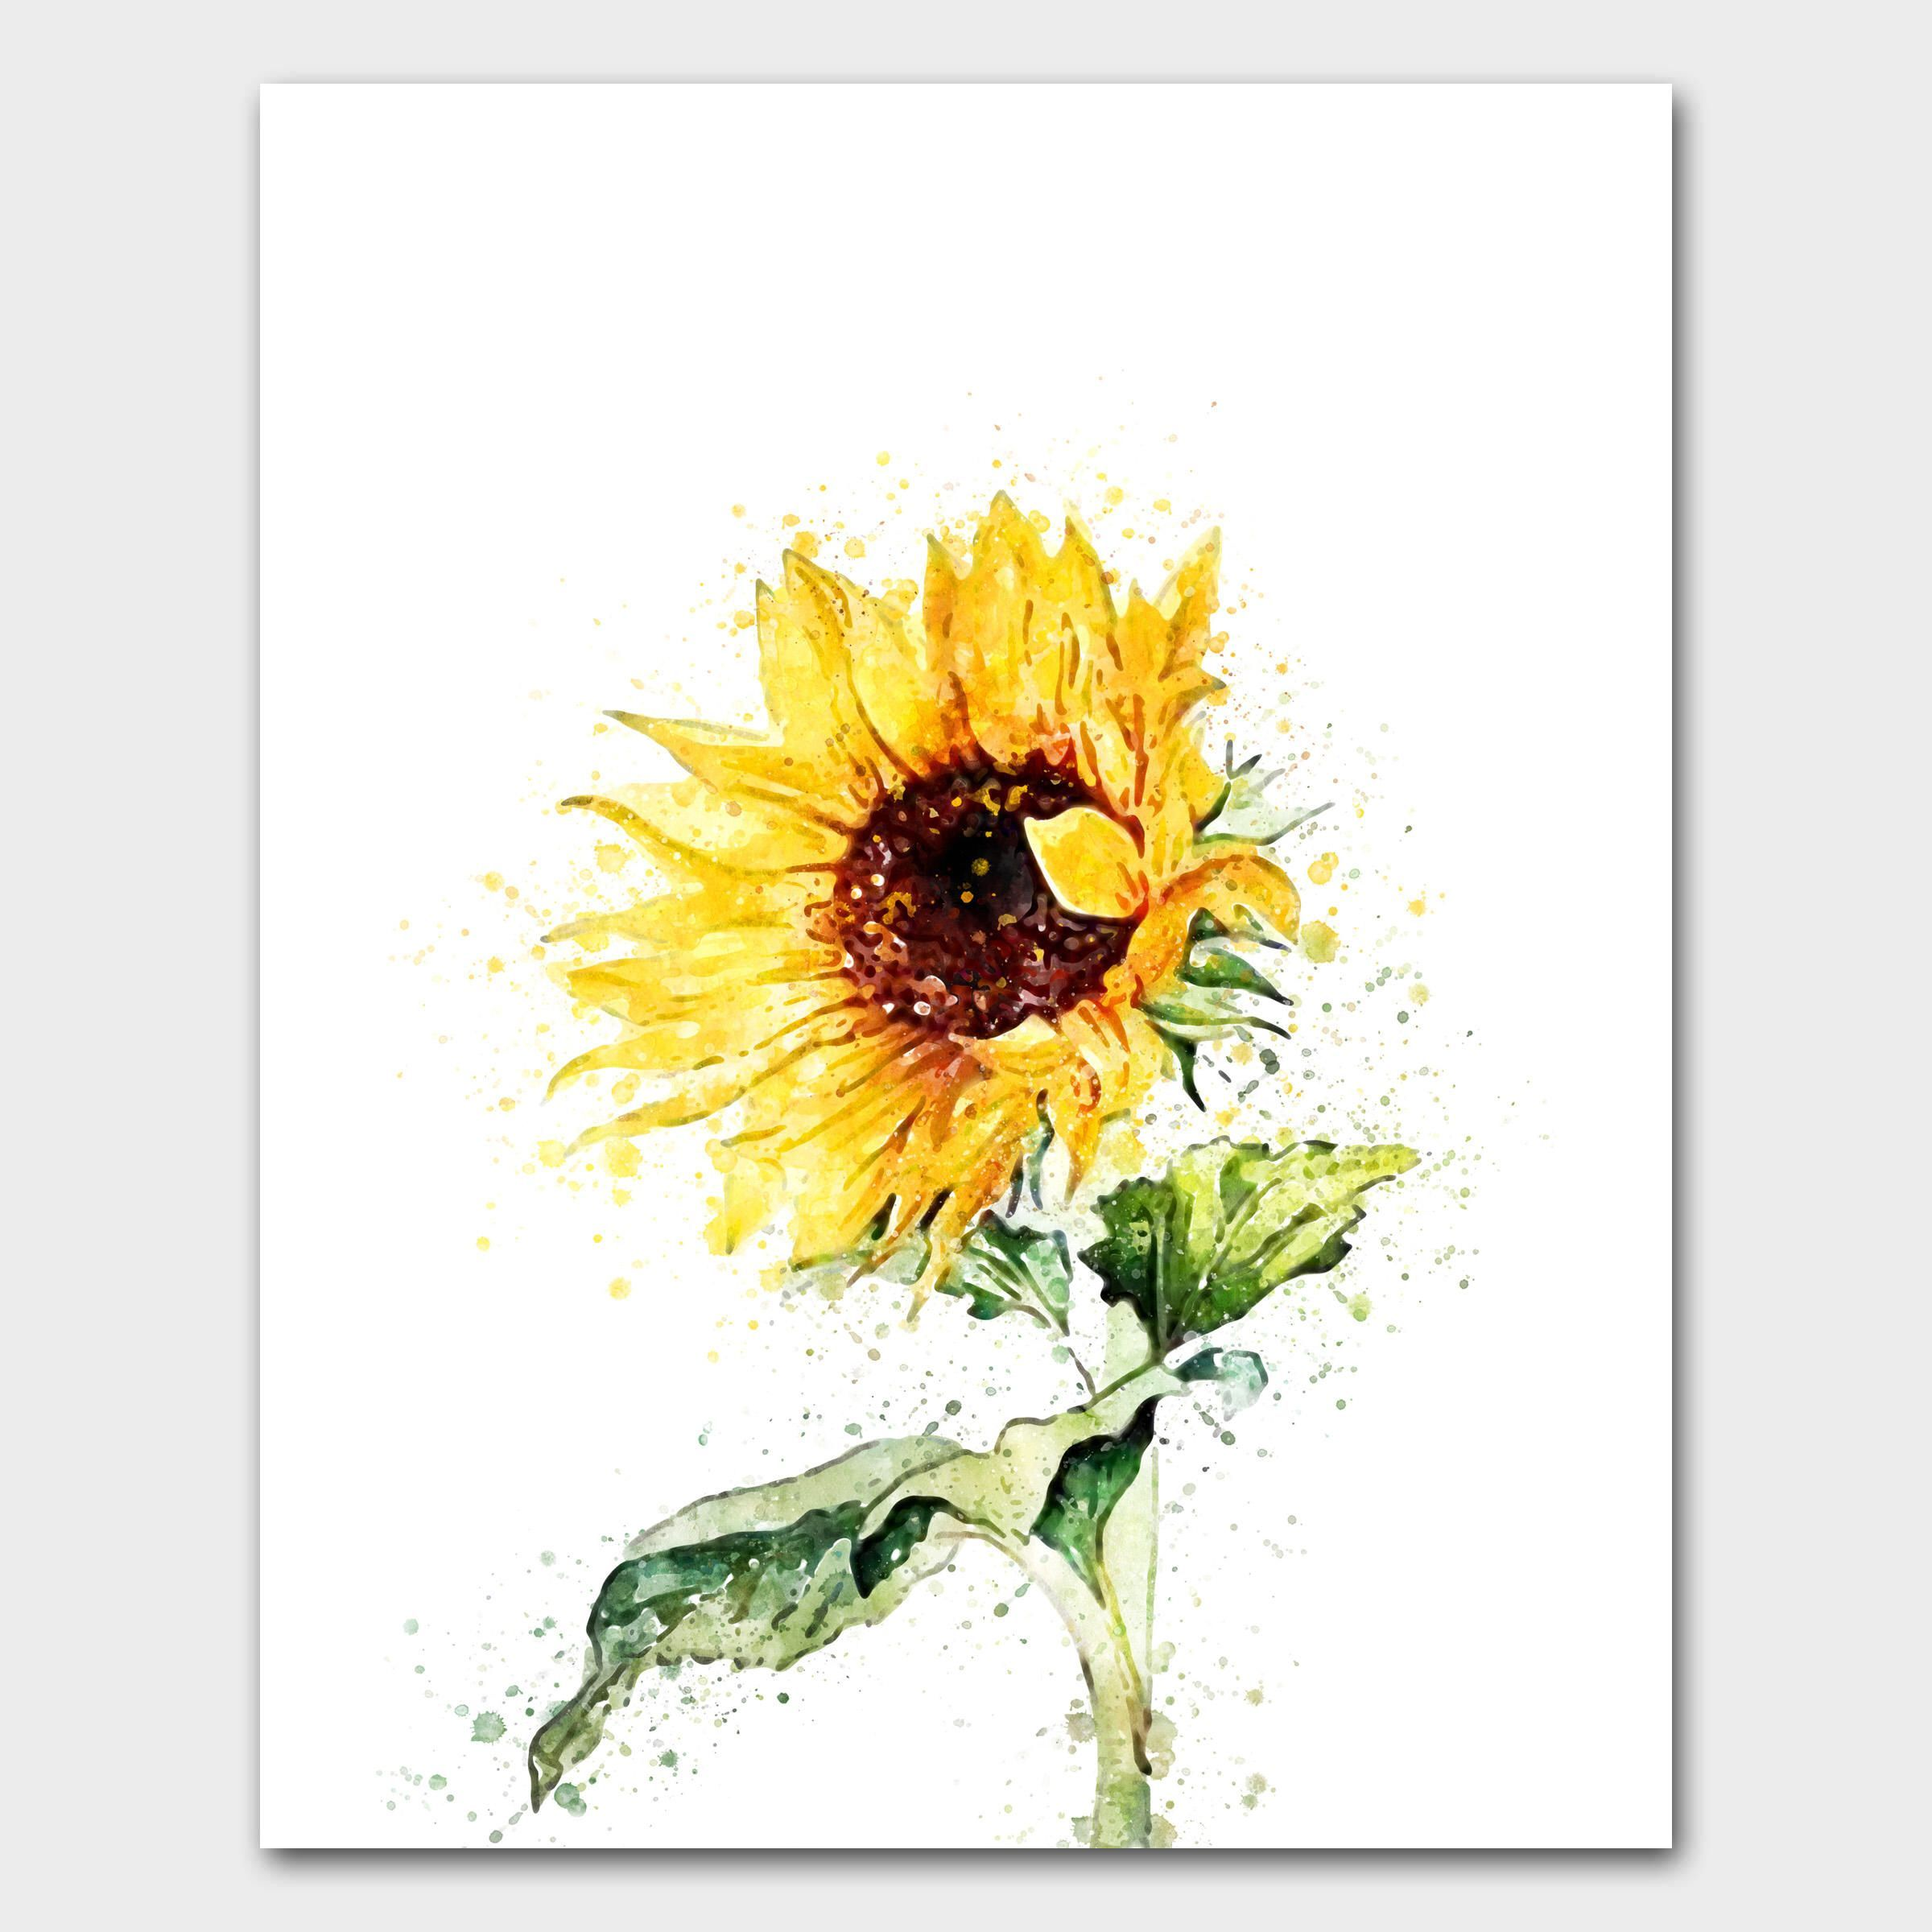 Pin By Gigi Lin On Idea Watercolor Sunflower Watercolor Flowers